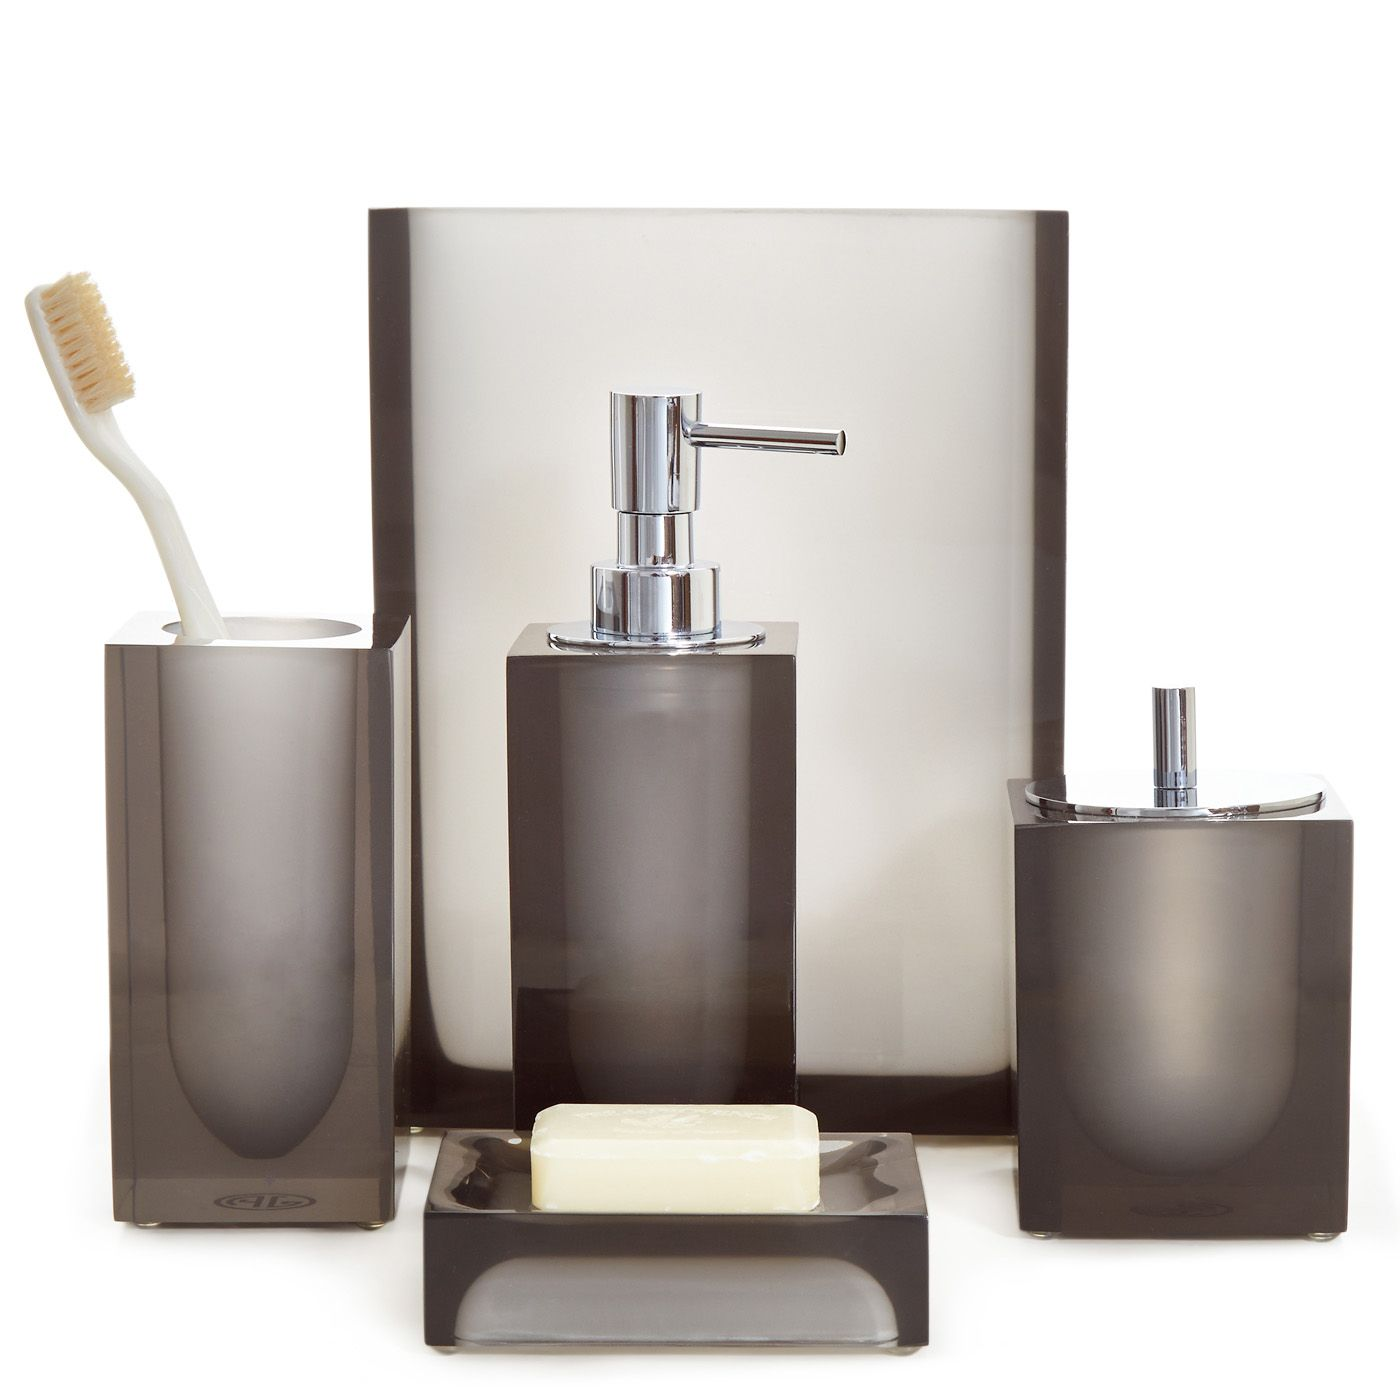 Smoke Hollywood Soap Dispenser | Smoking, Storage and Bathroom ...